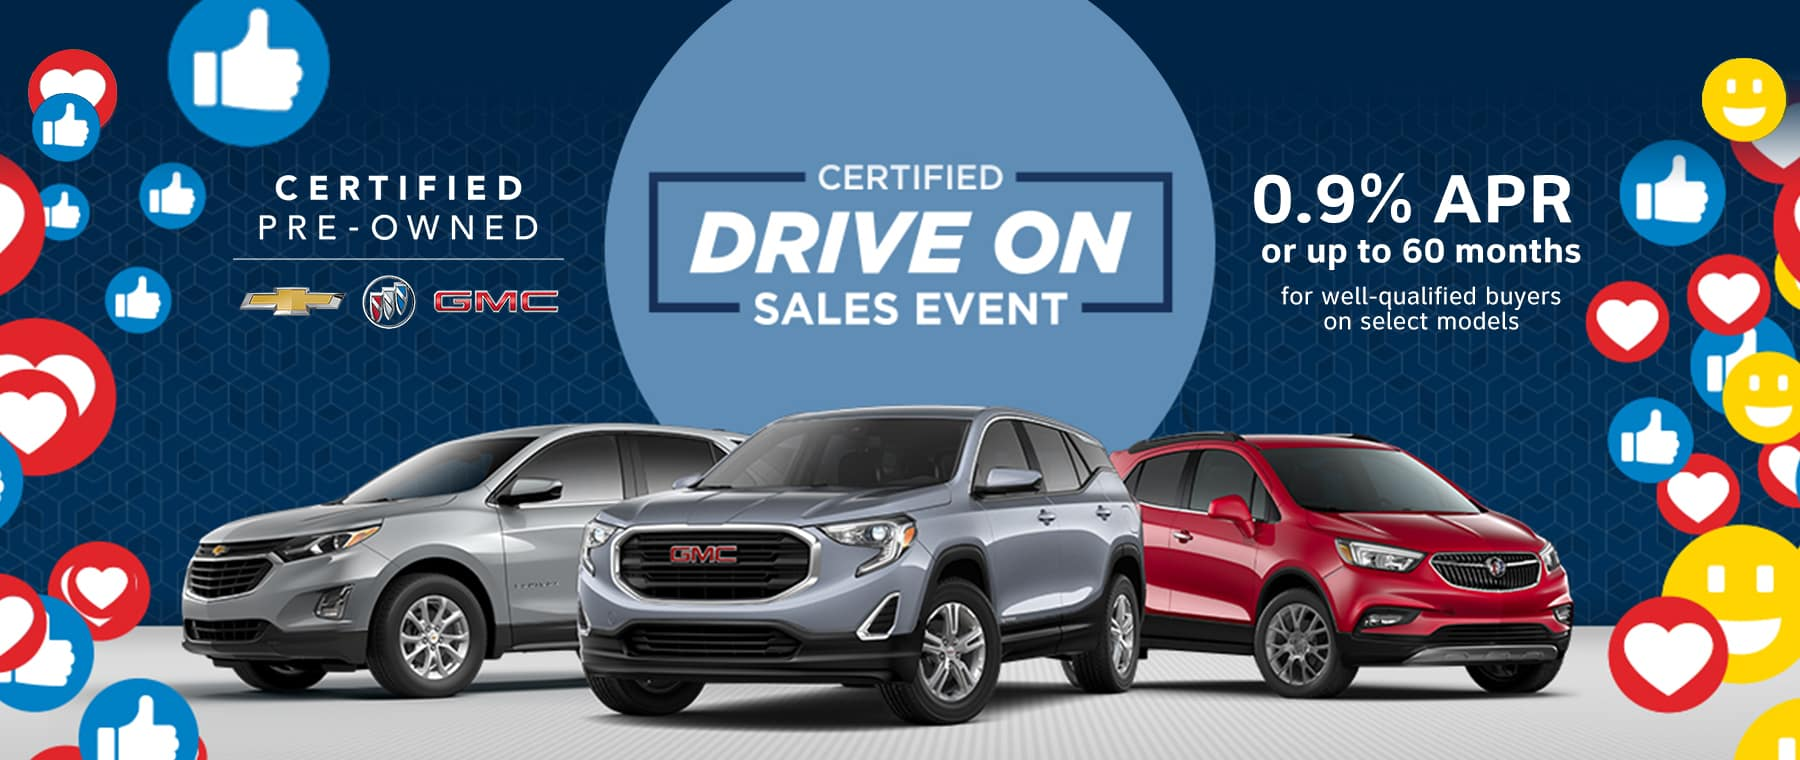 BUICK GMC CPO DRIVE ON SALES EVENT